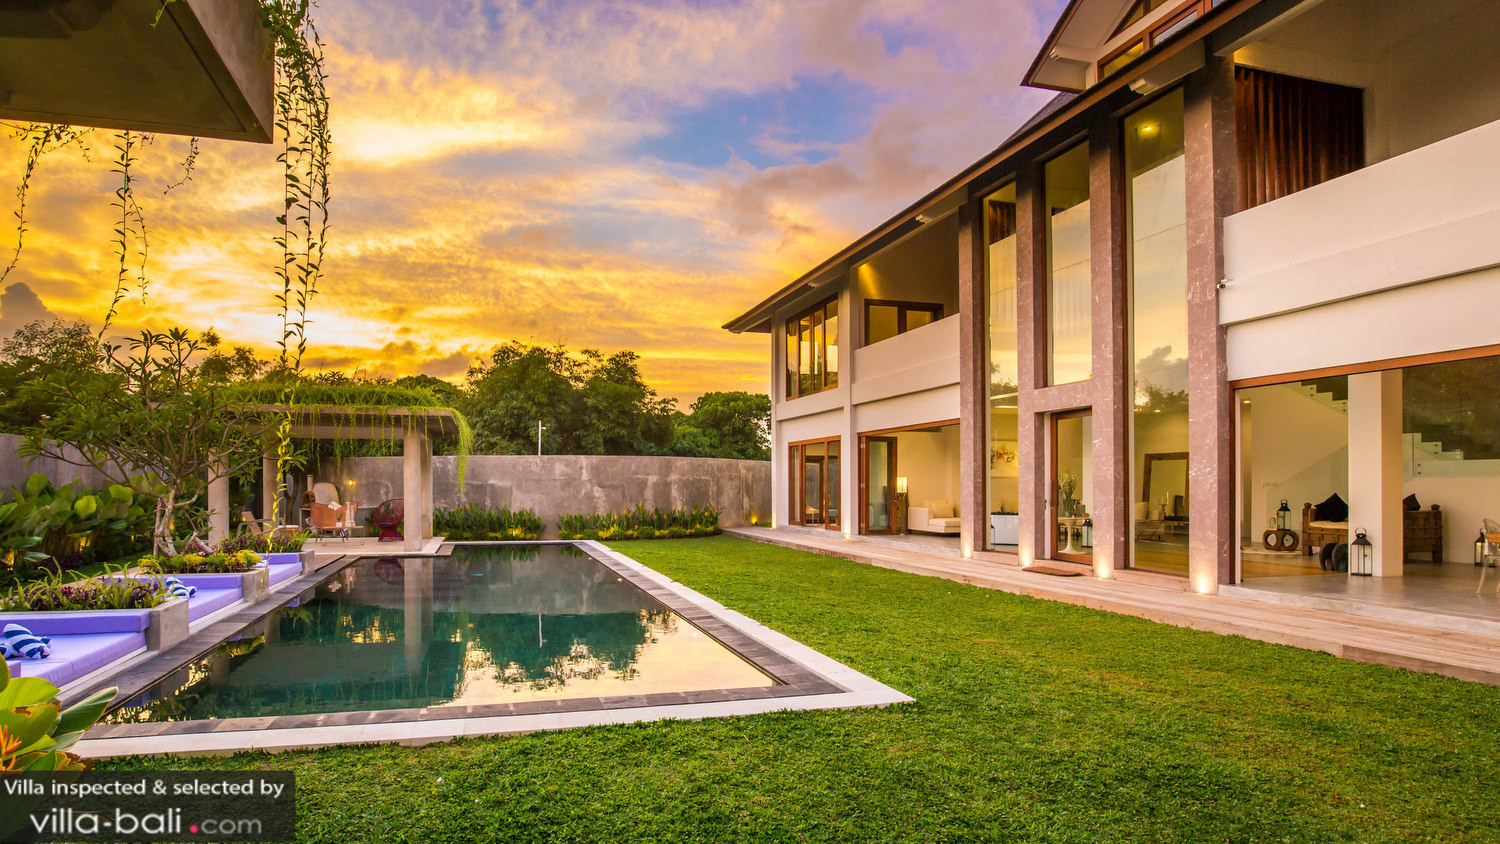 Best luxury villas in Bali - Villa Delfino